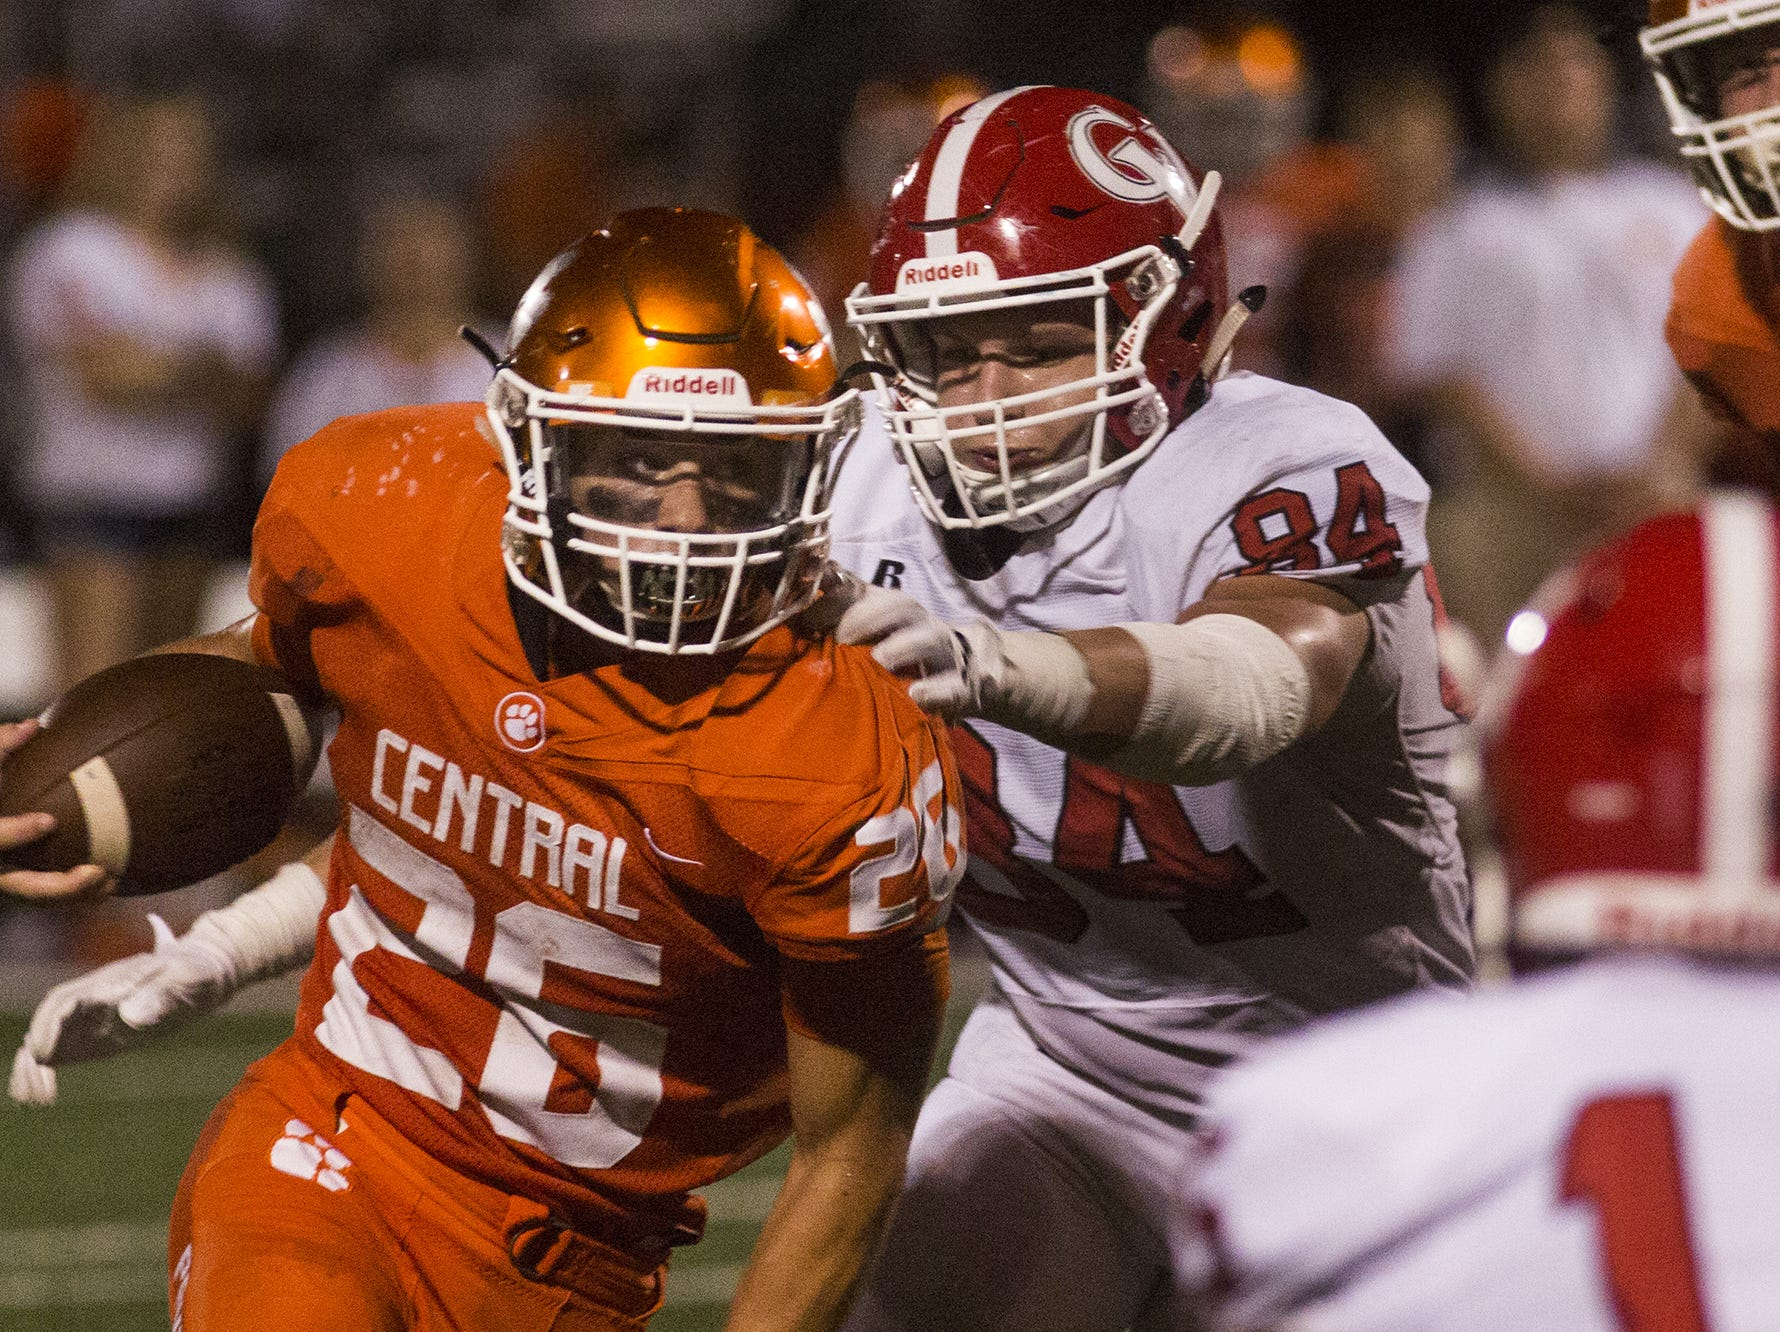 Central York's Hunter Werner runs the ball. Central York defeats Cumberland Valley 31-14 in football at Central York High School in Springettsbury Township, Friday, August 31, 2018.